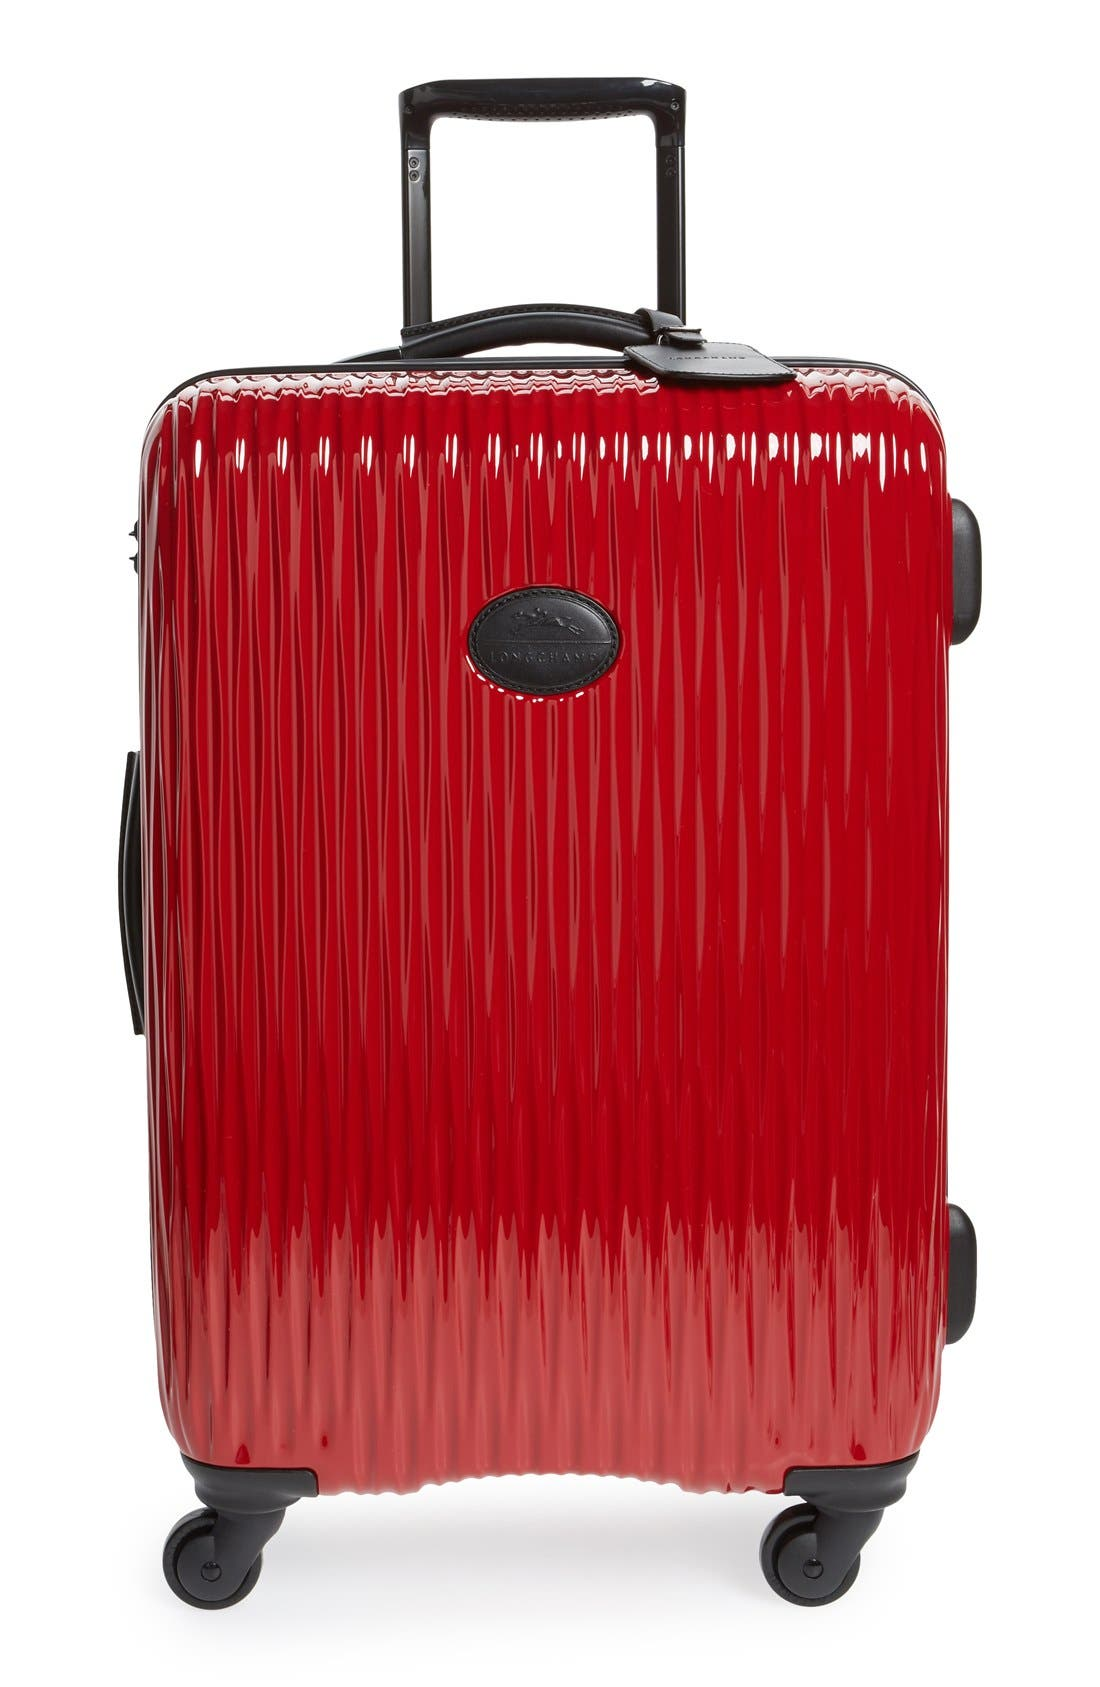 LONGCHAMP 'Medium Fairval' Four-Wheel Hard Shell Suitcase